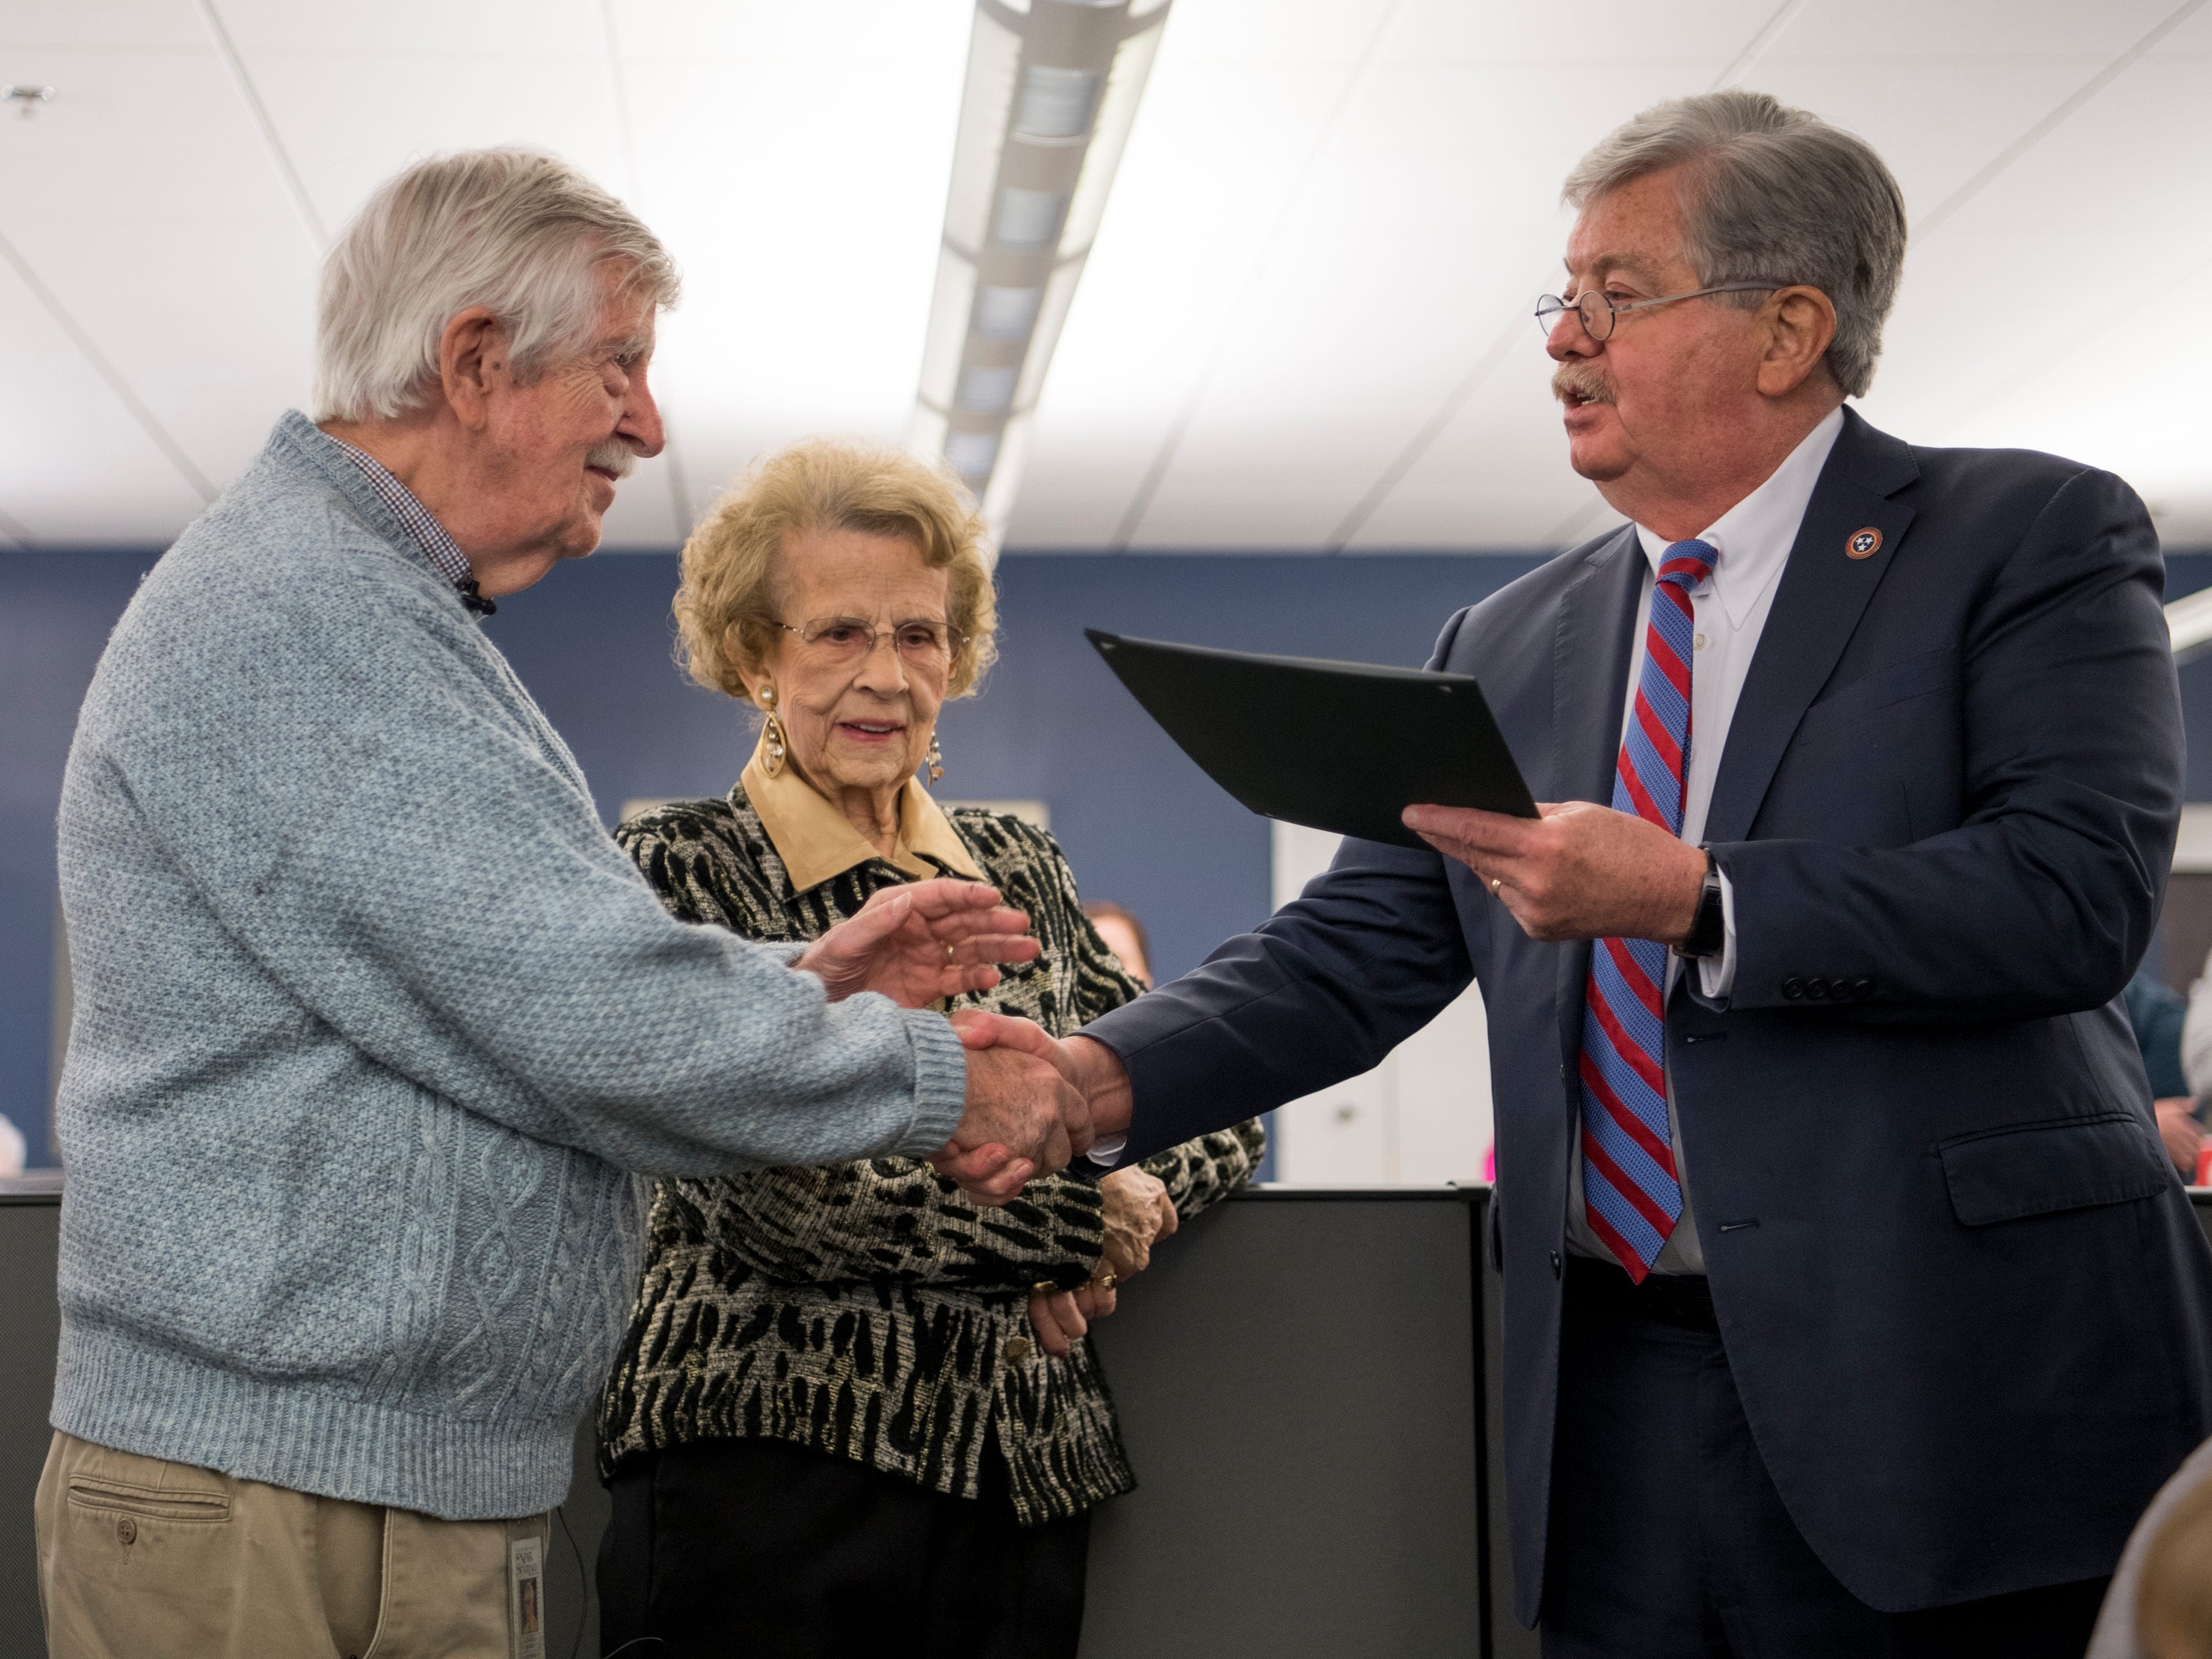 Tennessee Lt. Gov. Randy McNally, right, reads a proclamation for News Sentinel cartoonist Charlie Daniel, left, in the News Sentinel newsroom on Friday, February 1, 2019. The Knoxville News Sentinel celebrated the retirements of executive editor Jack McElroy and cartoonist Charlie Daniel.